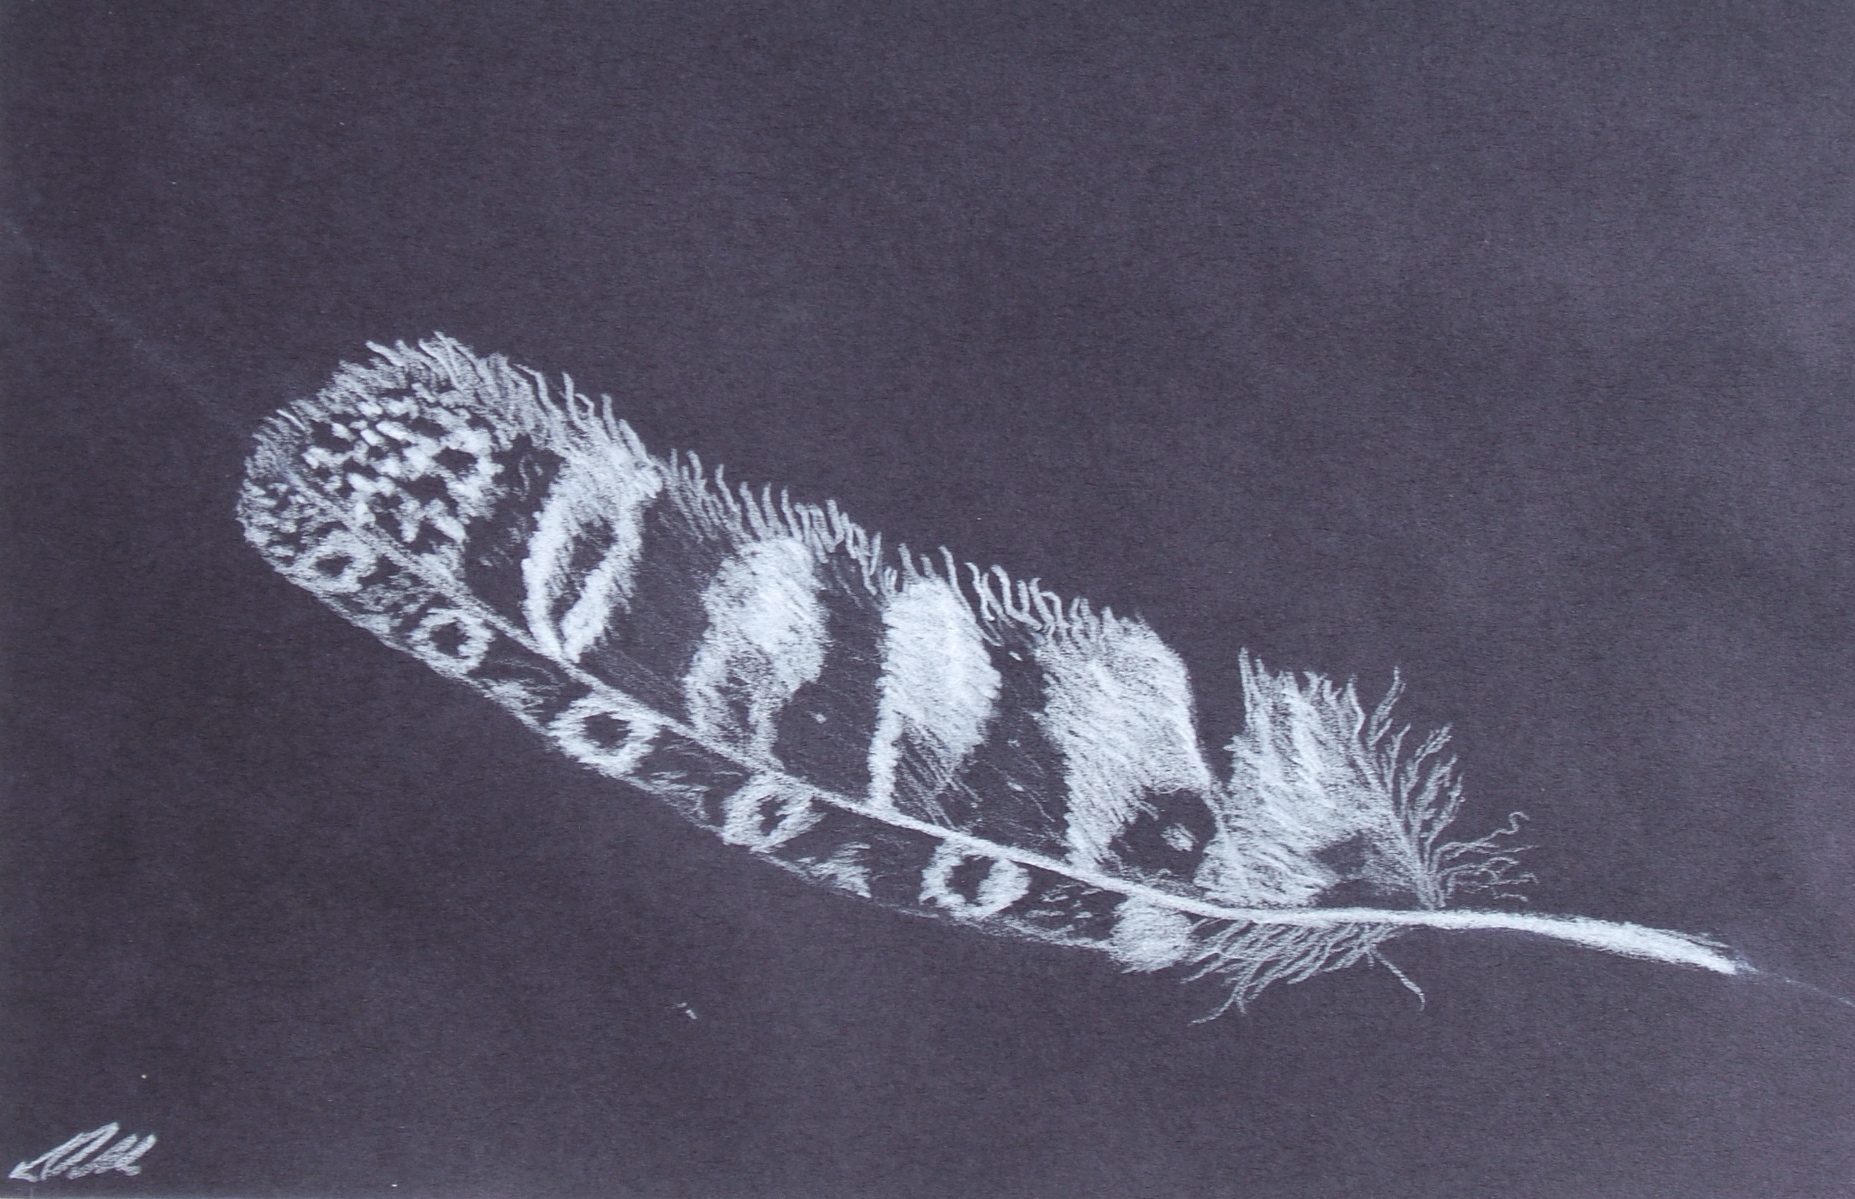 Laura Nelson sketch with white pencil on black from 2013 Ghost Ranch class